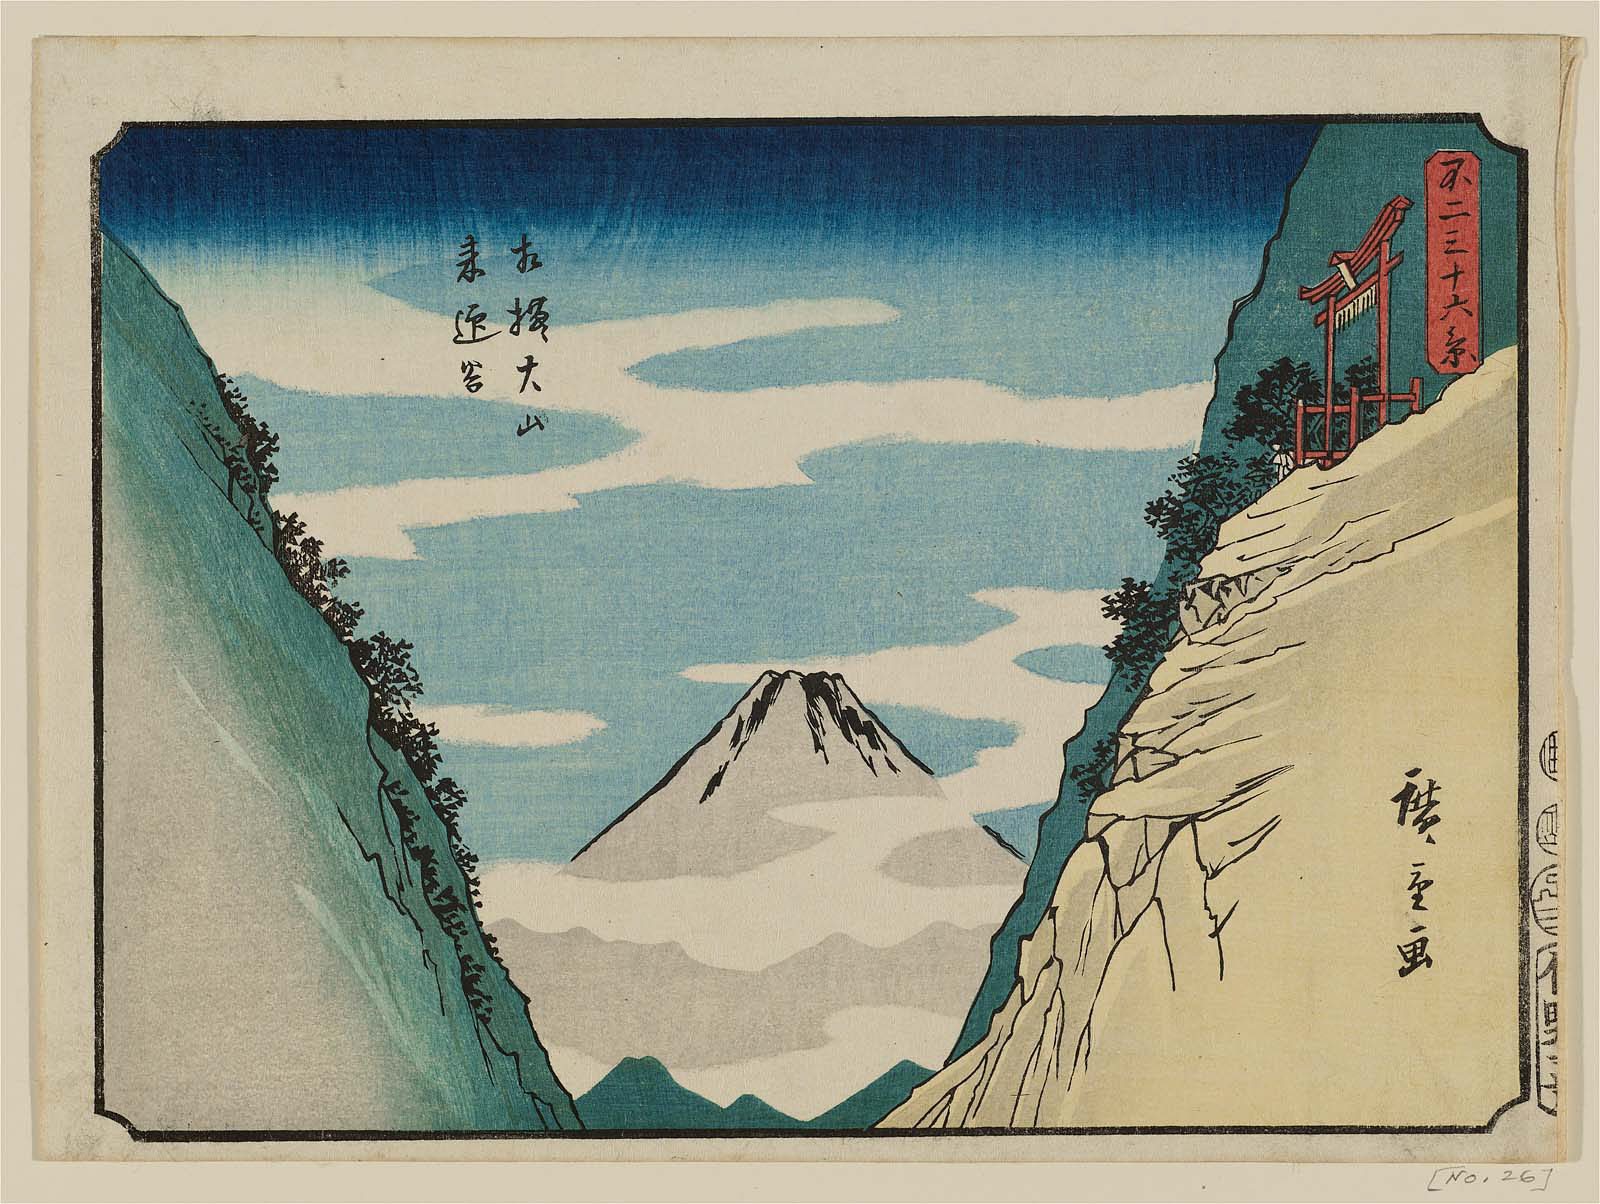 analysis of the great wave off kanagawa by hokusai essay Start studying ah 101 unit 1 quizzes  hokusai's print of the great wave off shore at kanagawa uses compositional unity in which of these ways  psychological .